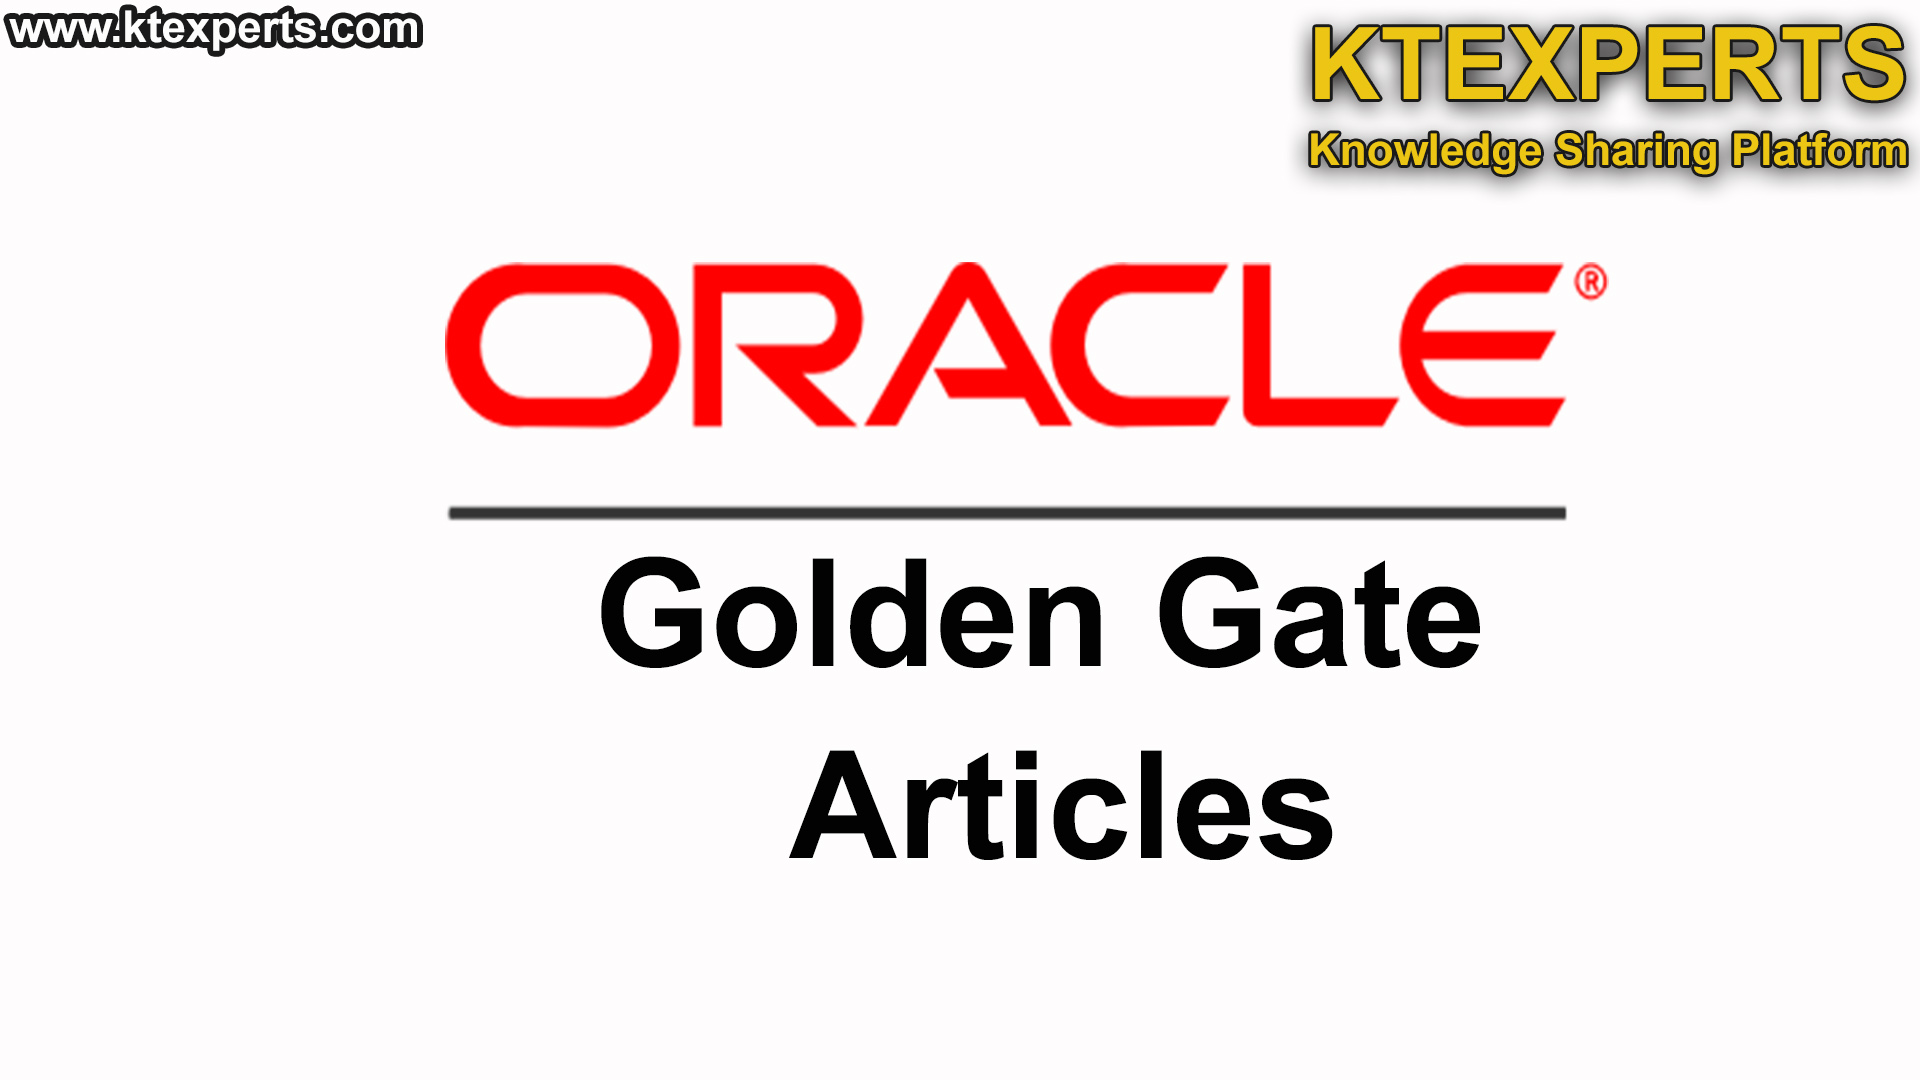 Oracle GoldenGate Articles